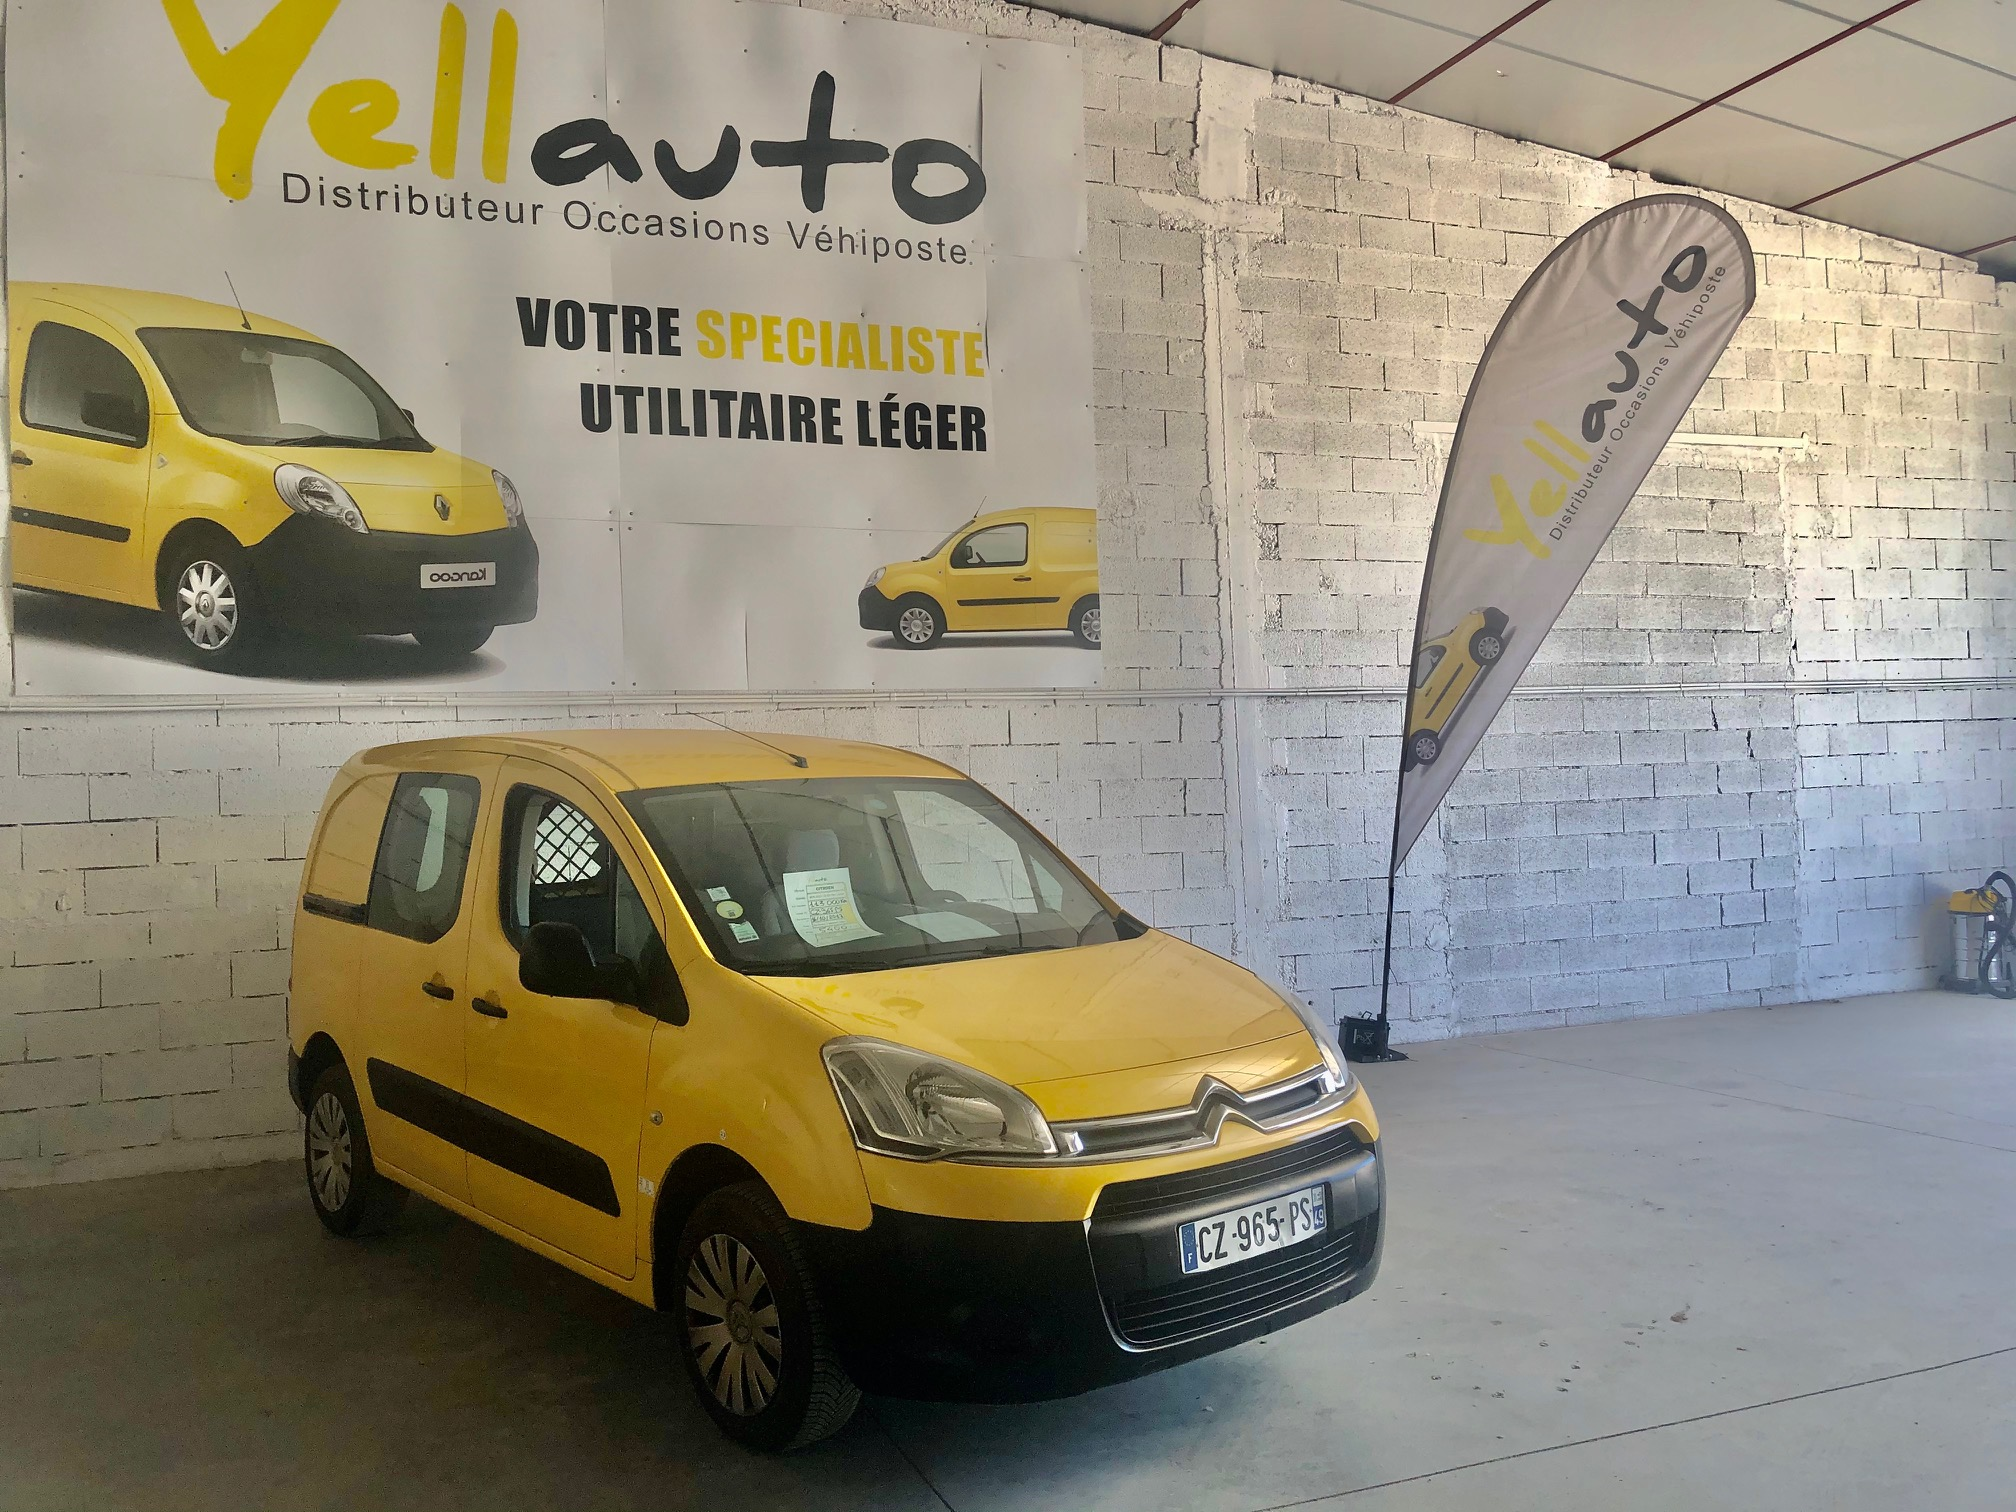 CITROËN BERLINGO 1.6 HDI 75 confort 3 places de 2013 avec 113000 km